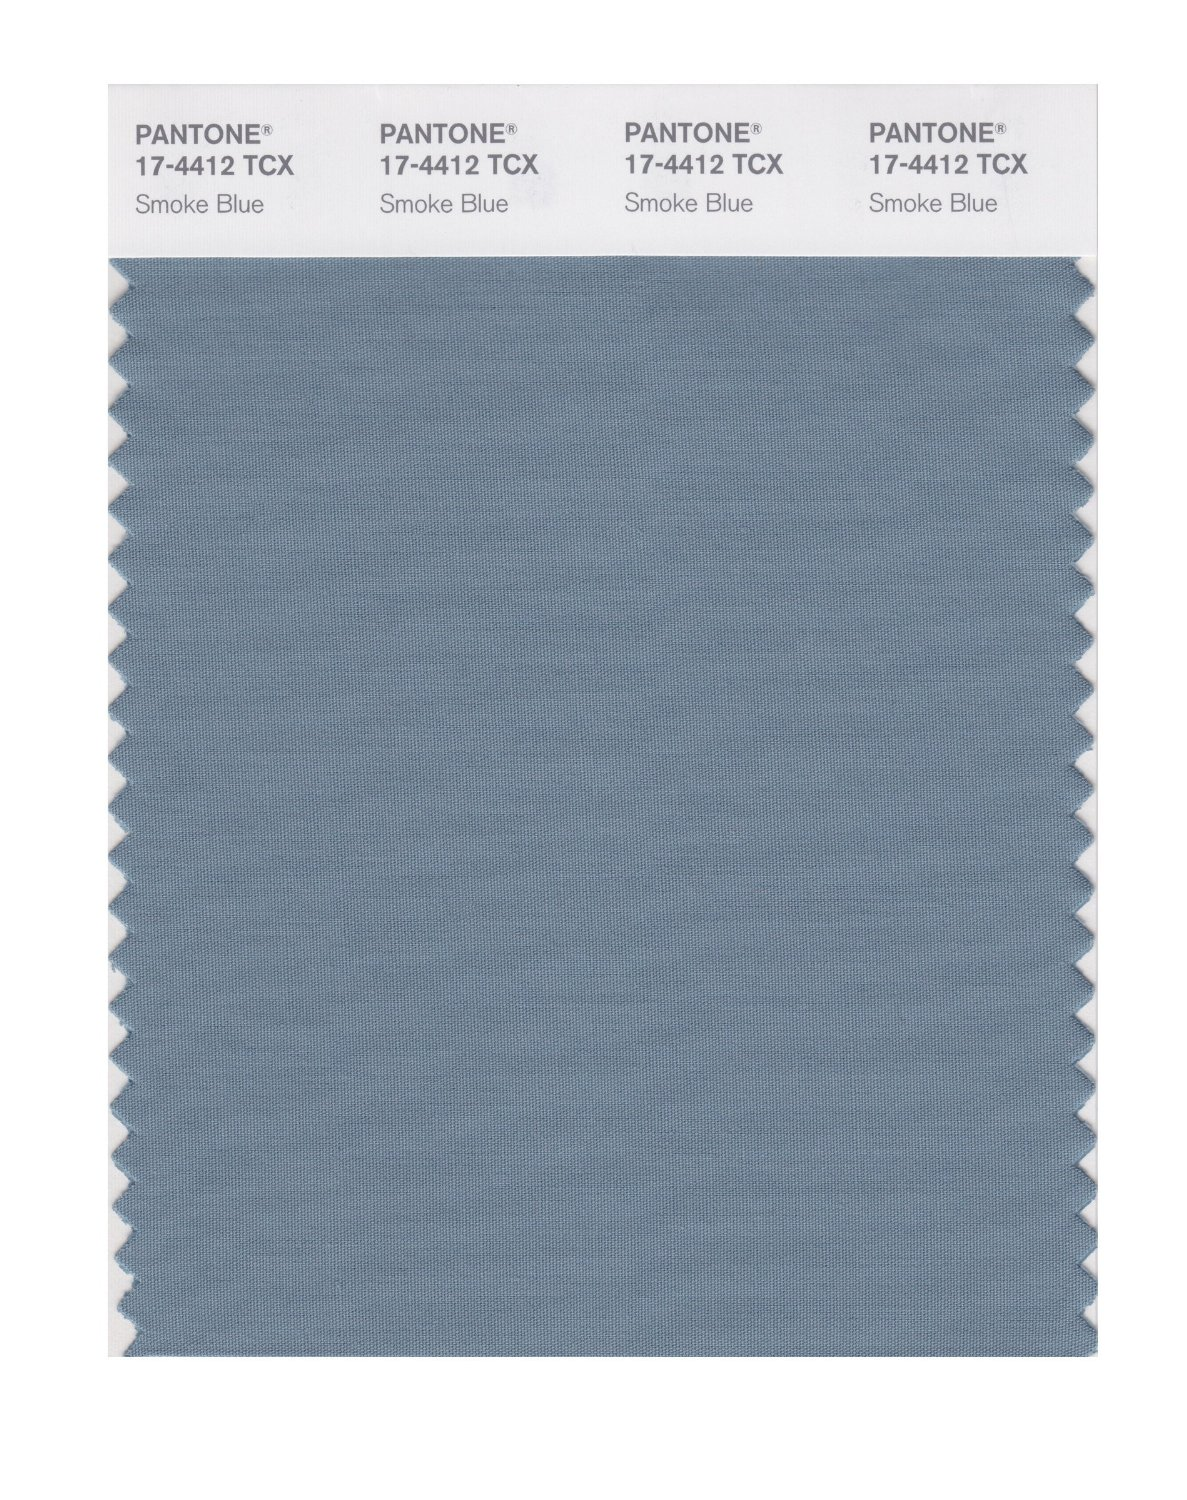 Pantone Smart Swatch 17-4412 Smoke Blue